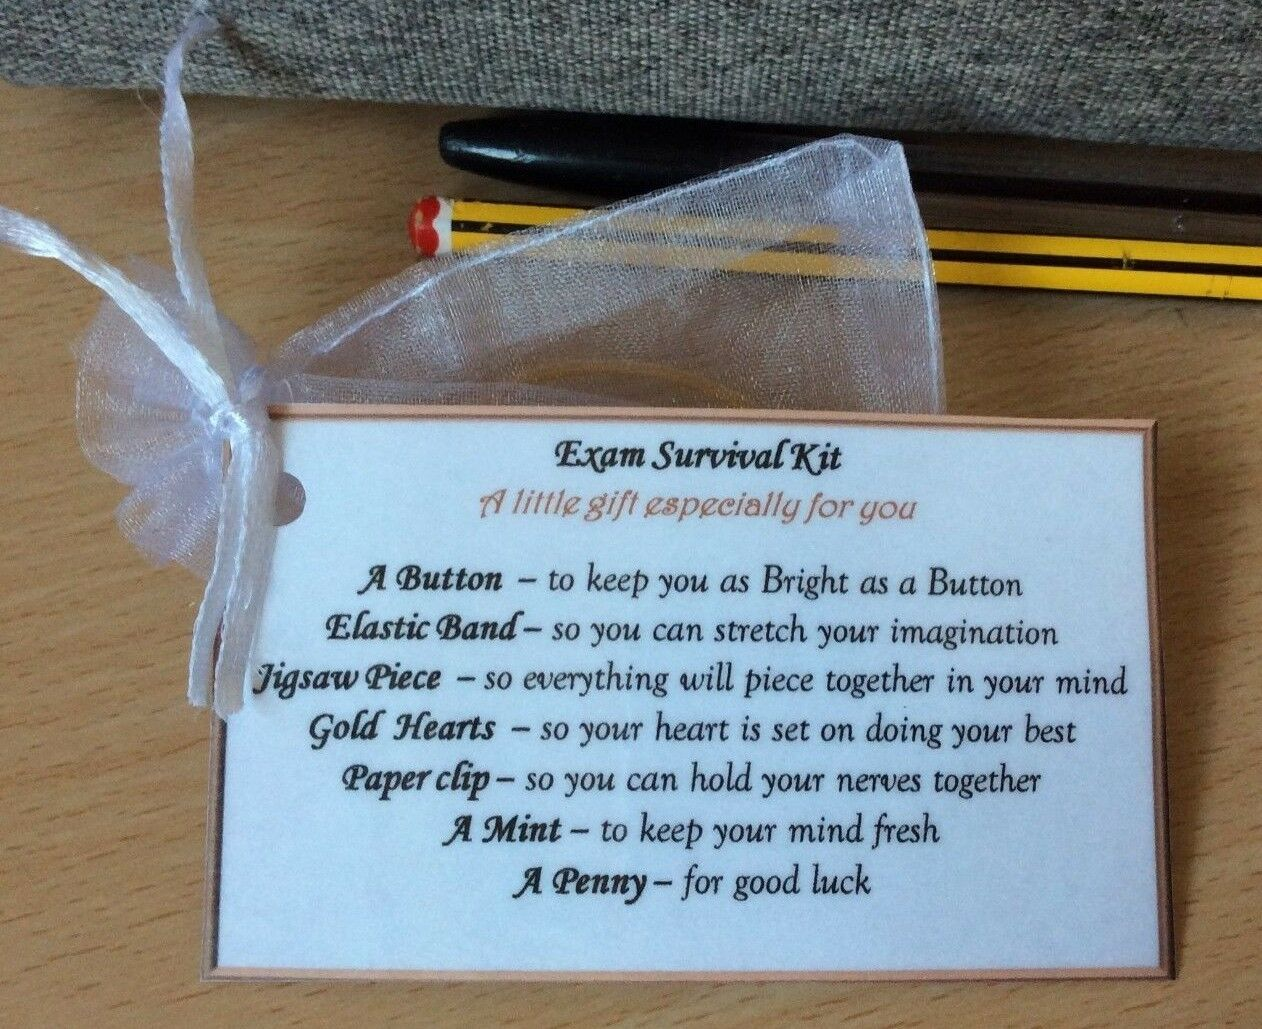 Details About Fun Keepsake Exam Survival Kit Gift For Music Dance Exam Car Theory School Gift